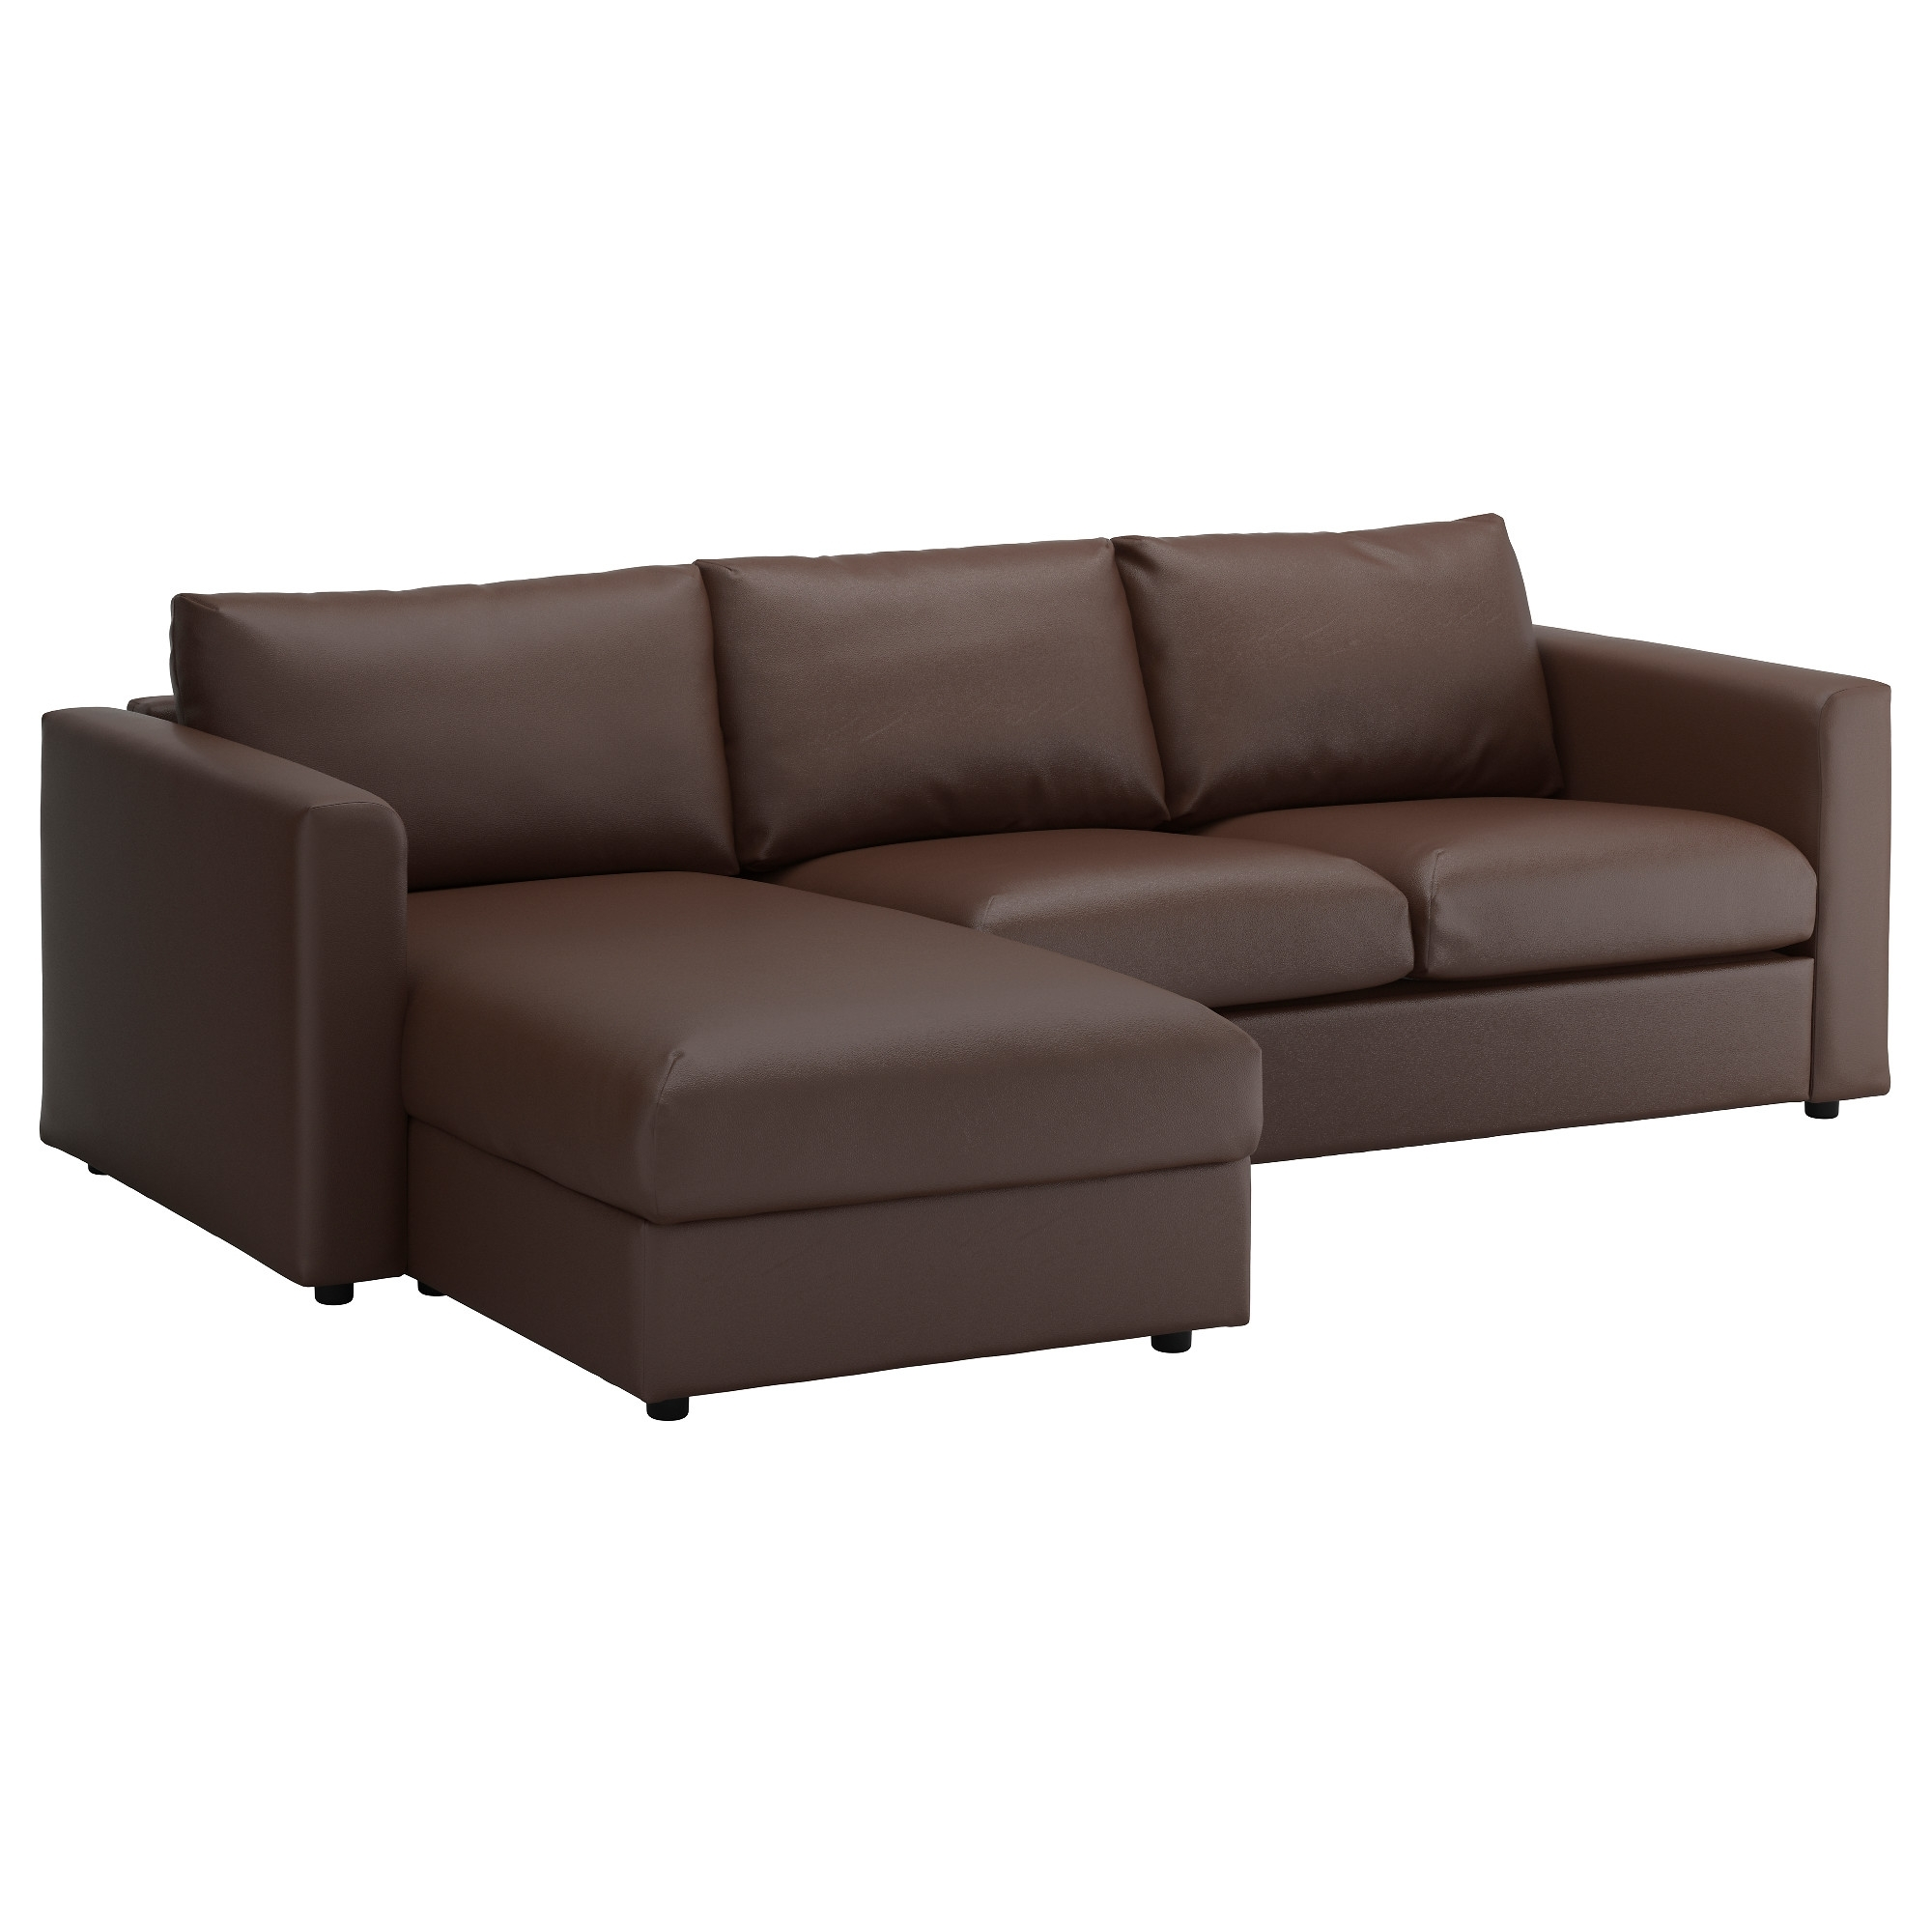 Vimle Sofa – With Chaise/gunnared Medium Gray – Ikea Regarding Current Ikea Chaise Couches (Gallery 13 of 15)